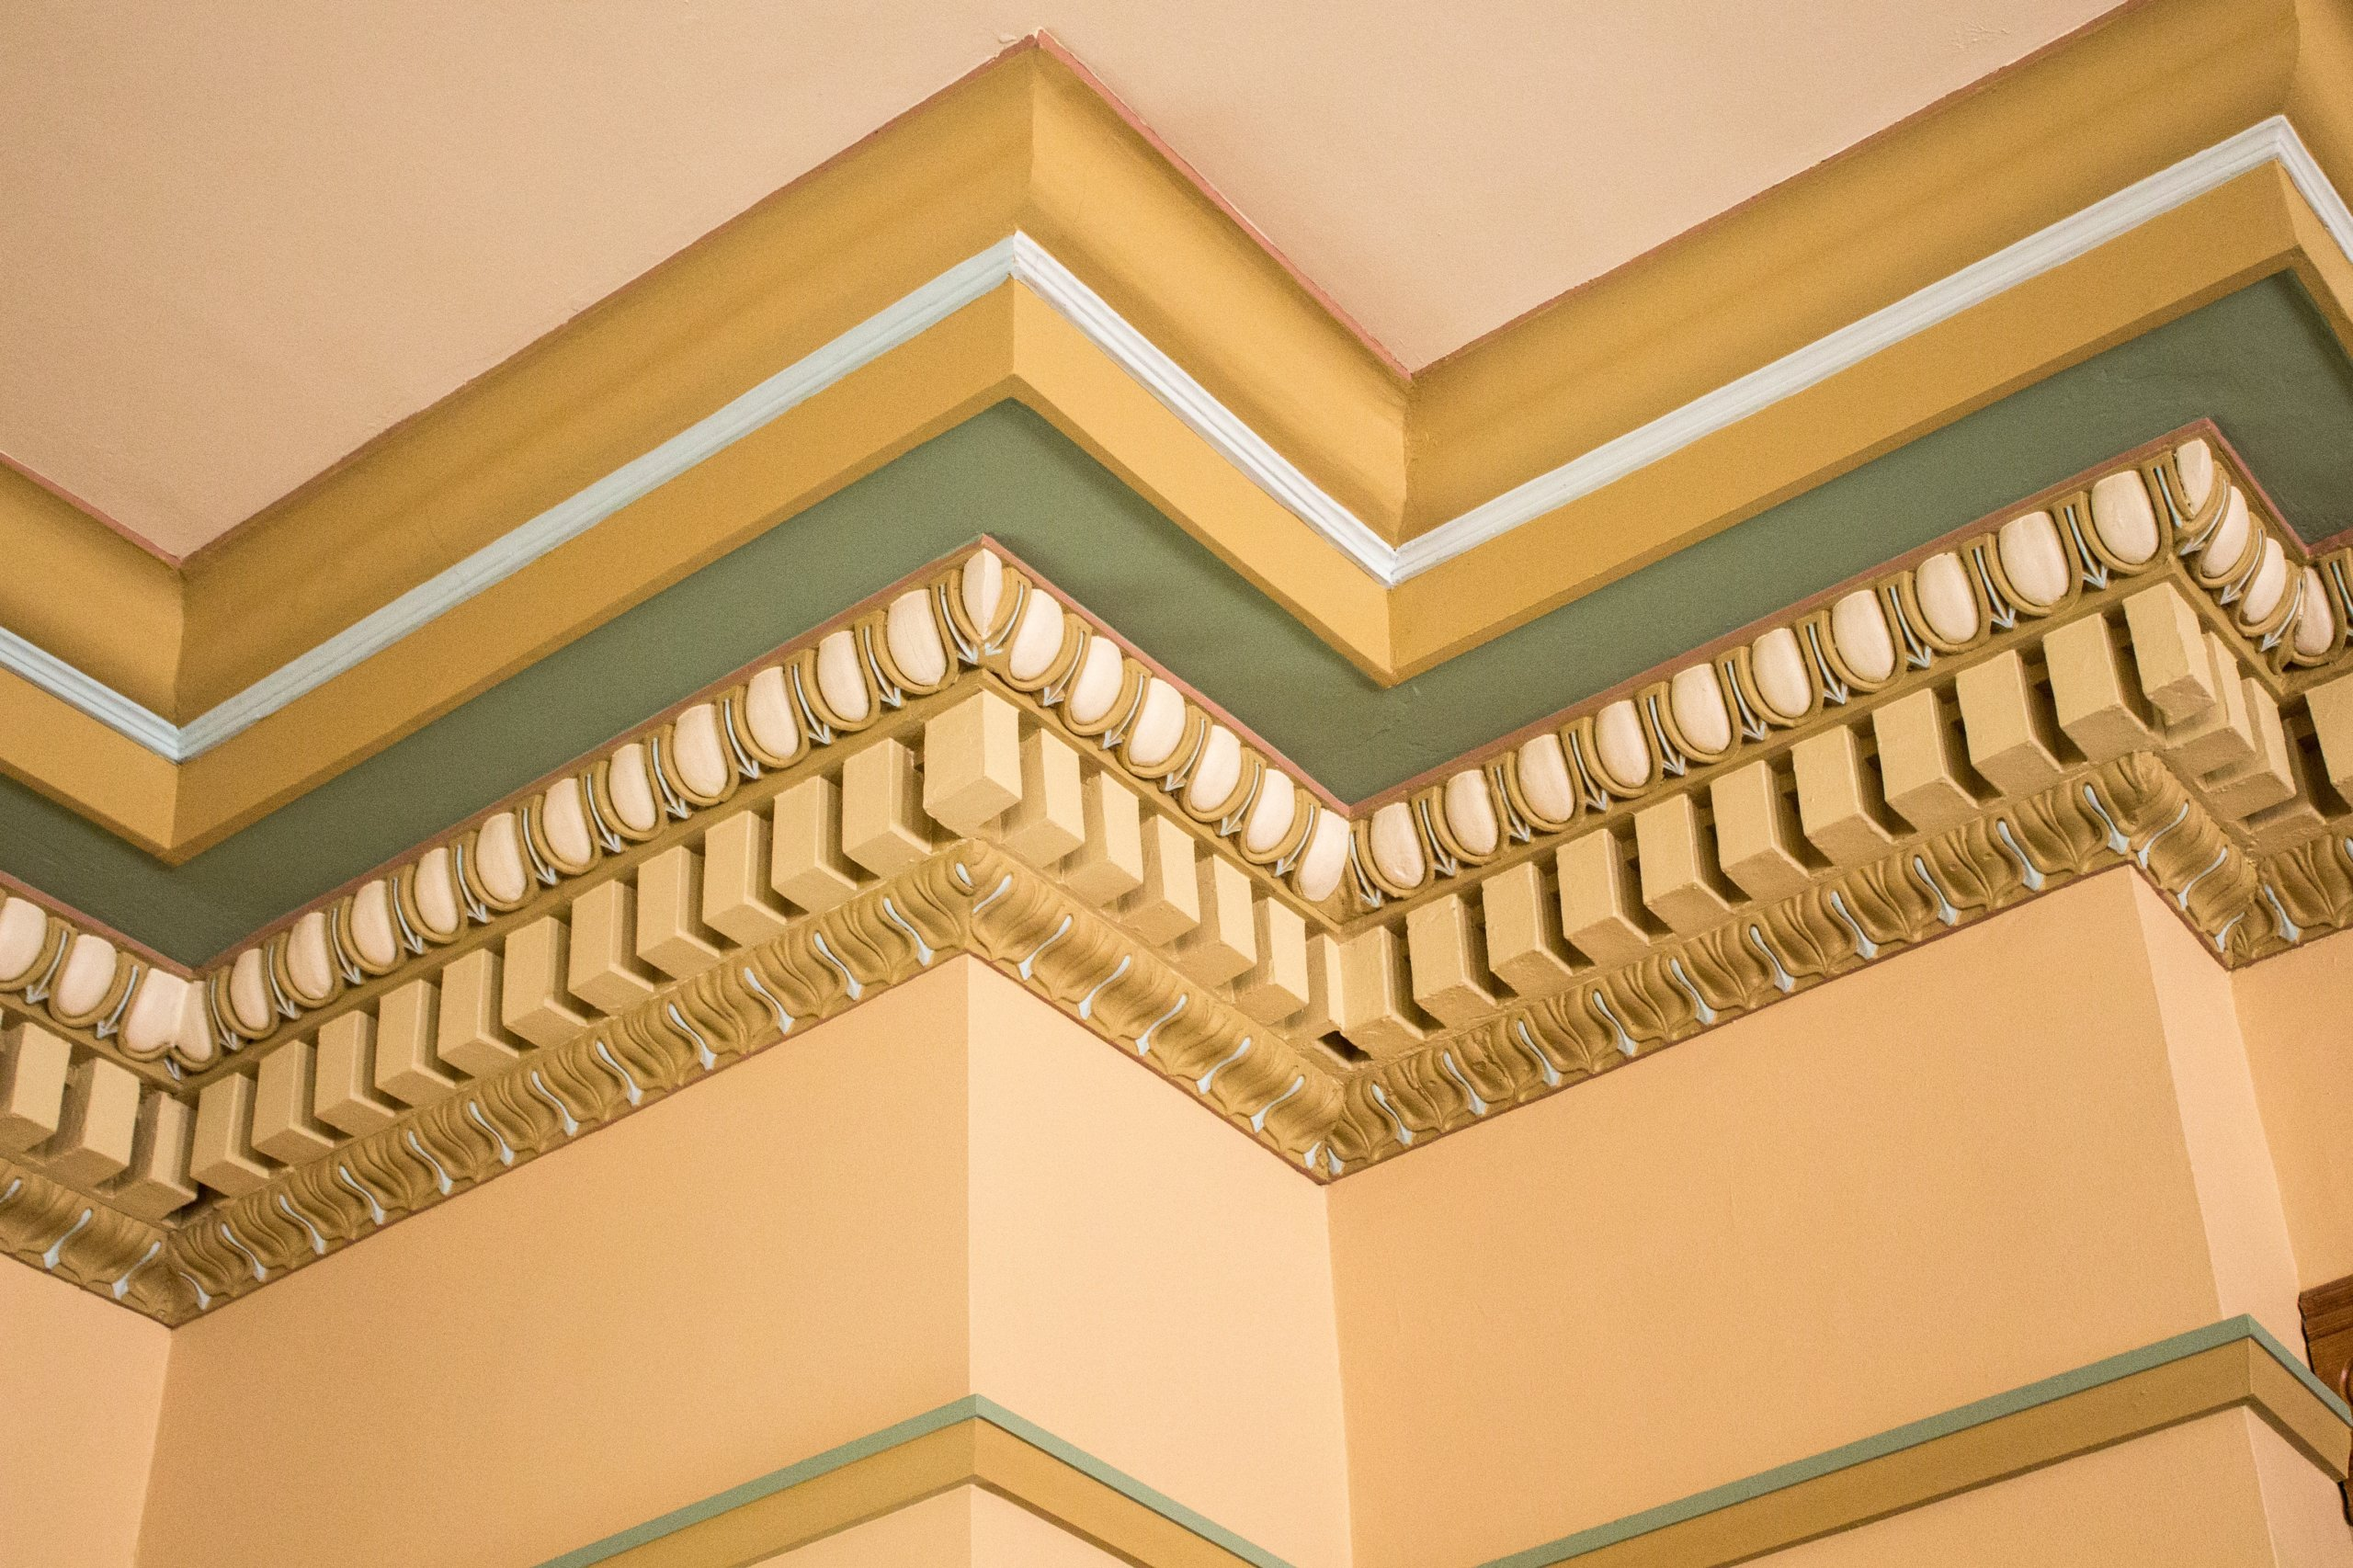 Crown molding with ornate woodwork